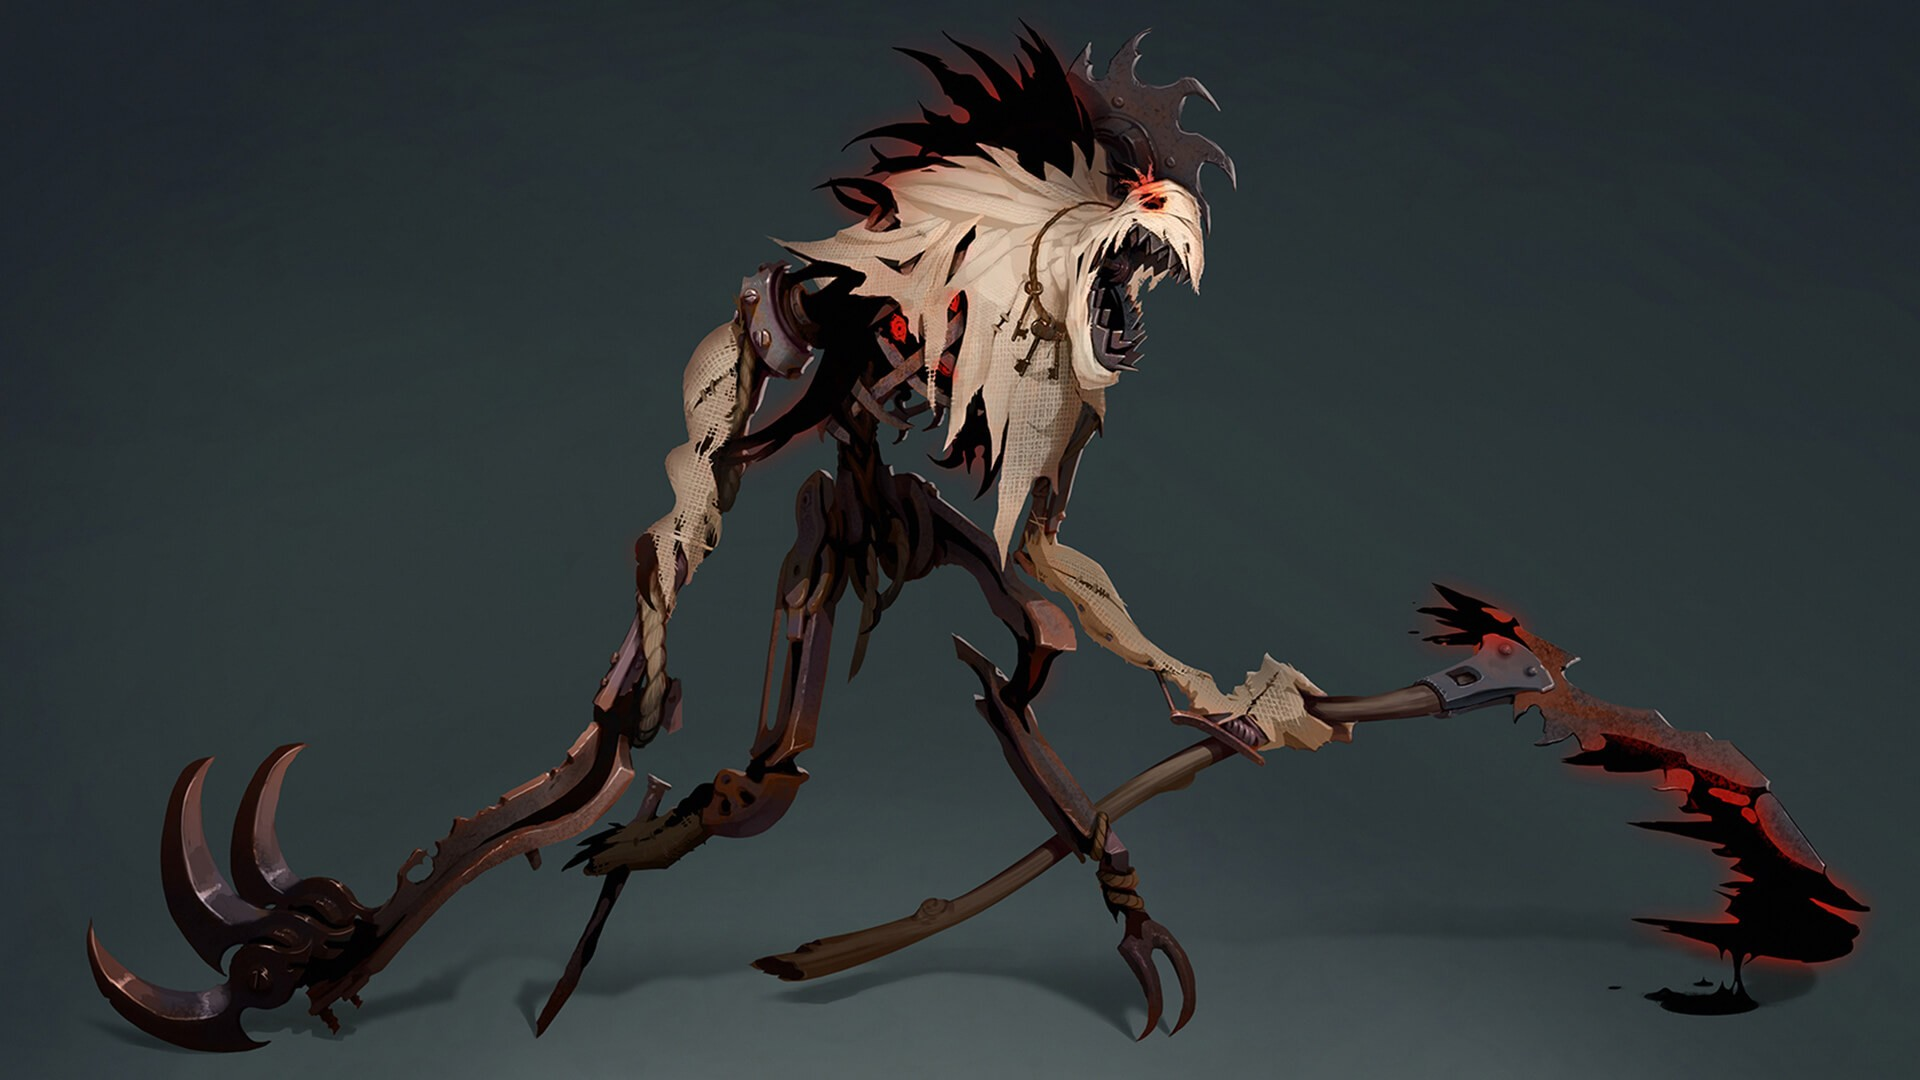 Riot Updates Sett Heads To Live Servers Fiddlesticks And Volibear Rework Progress Teases For Champions Coming To League Of Legends In 2020 Inven Global